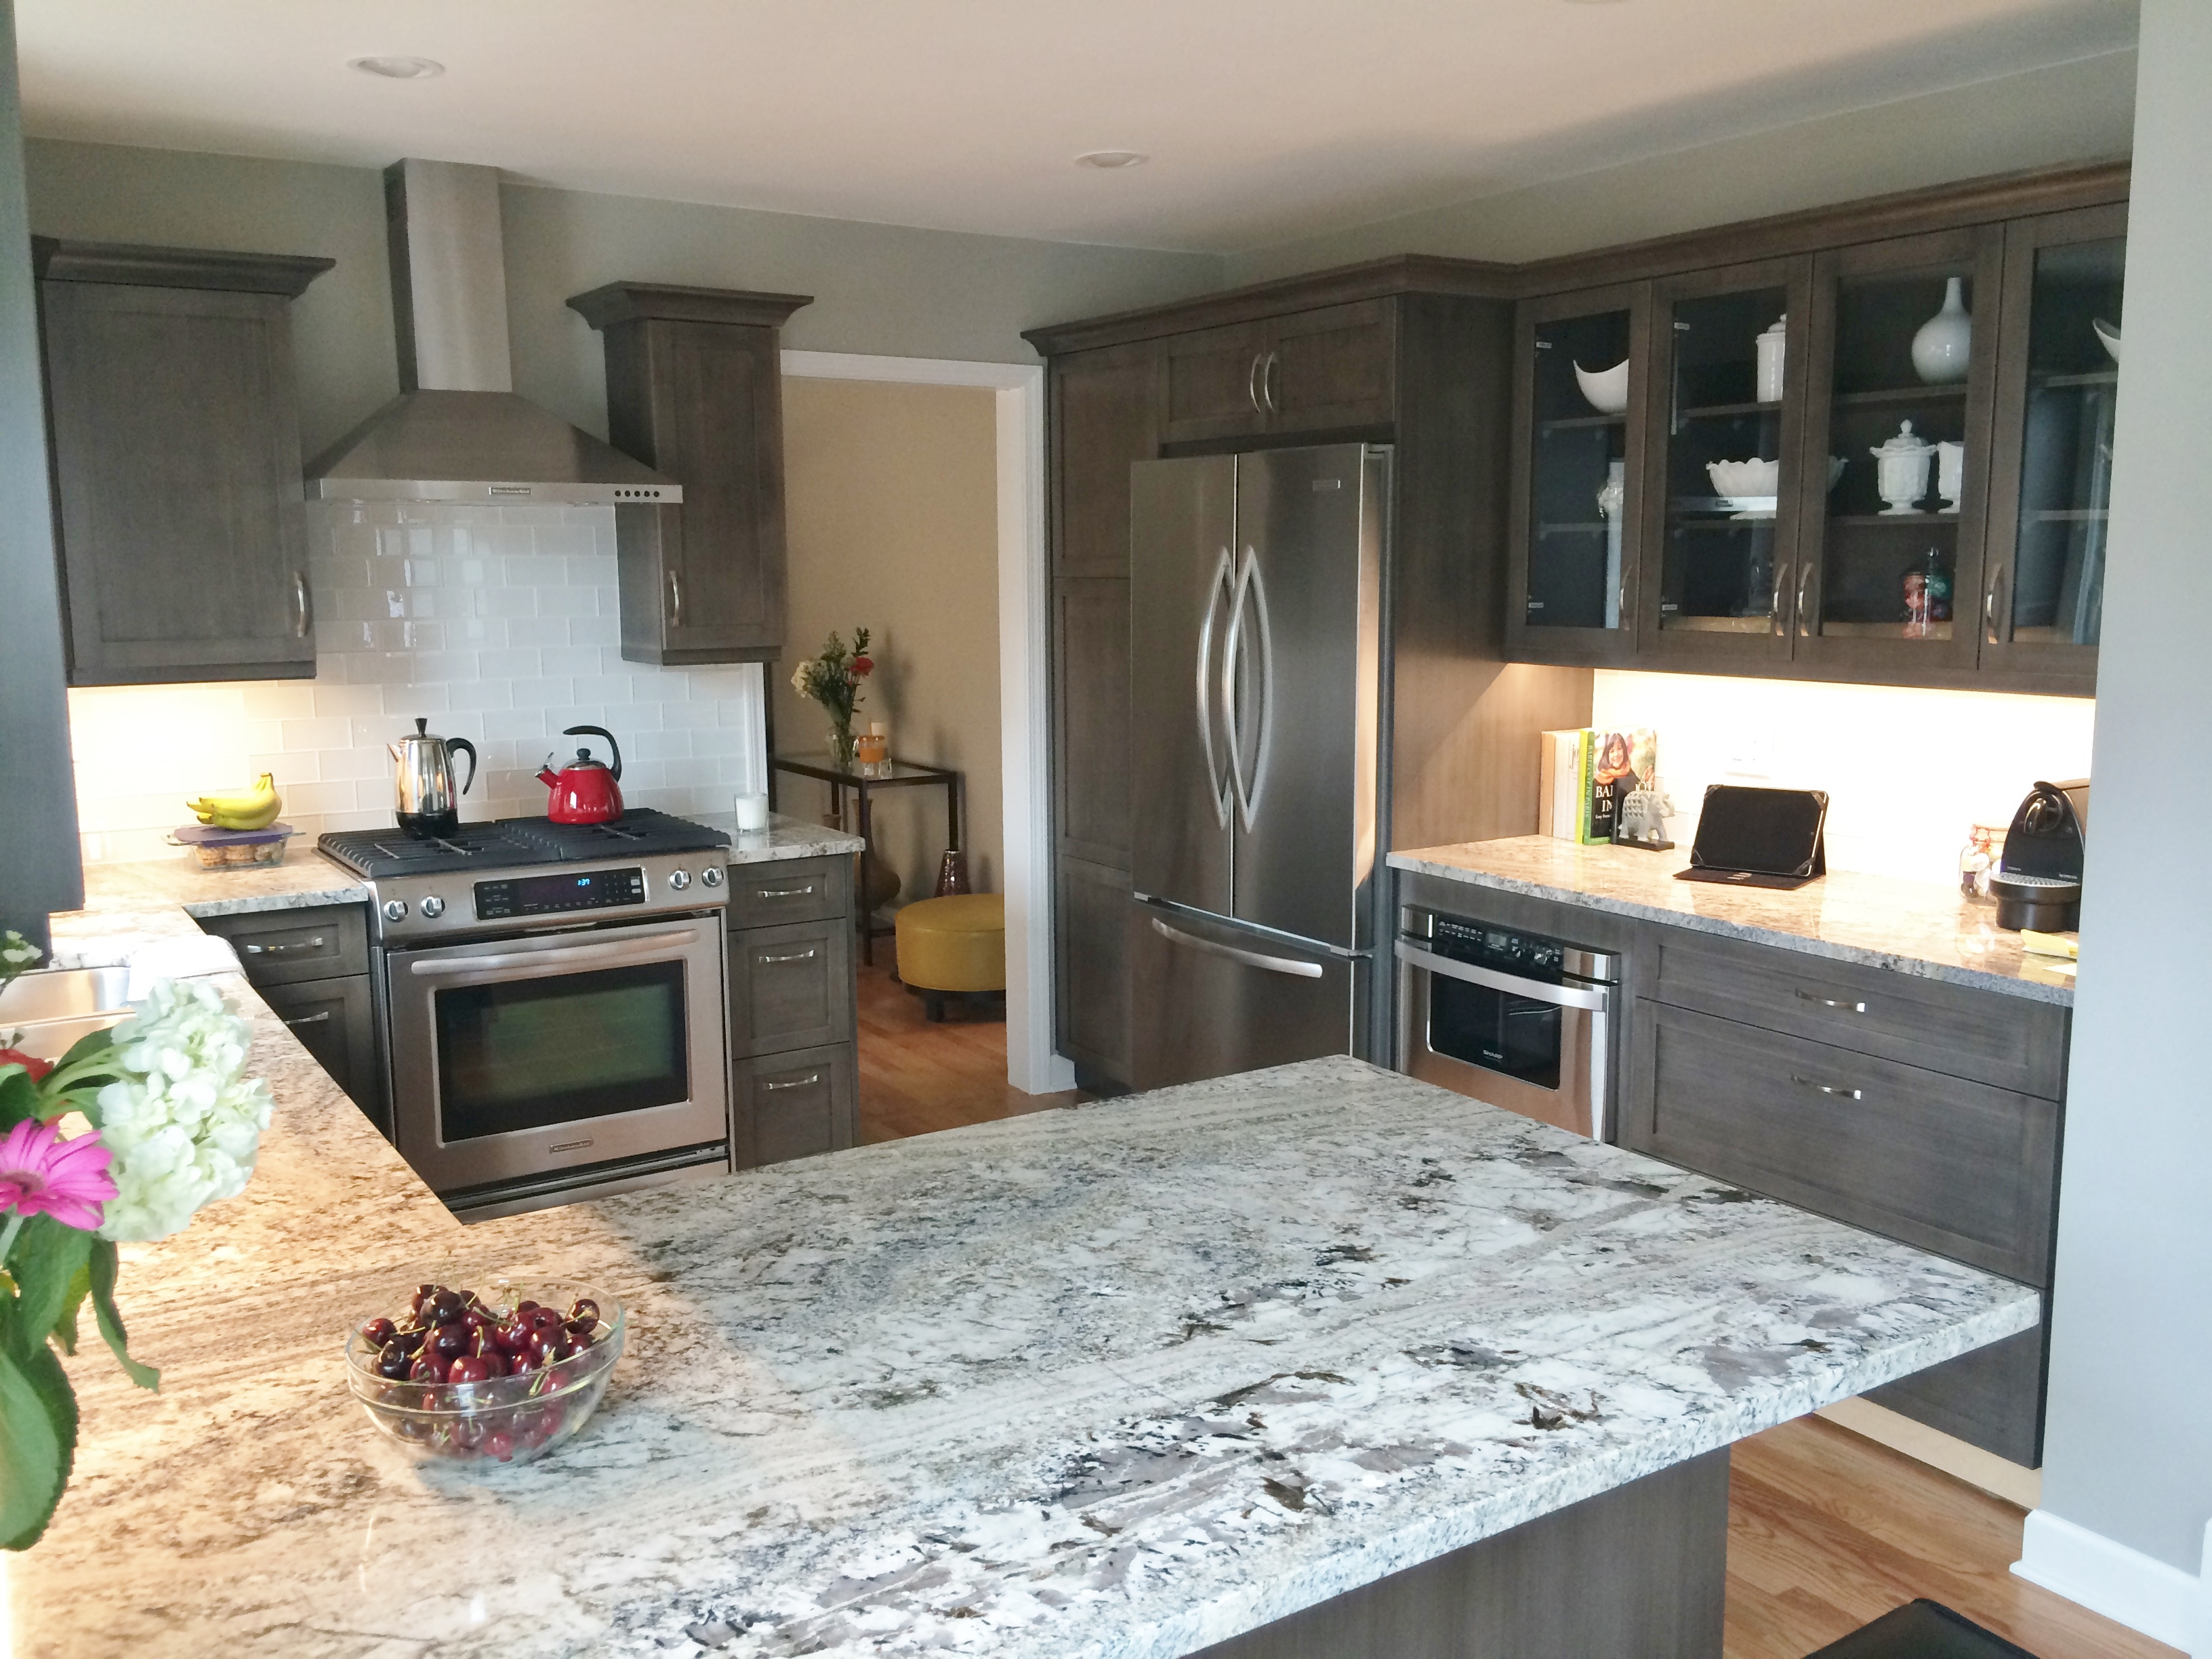 Pros And Cons Of Marble Countertops The Pros And Cons Of Granite Kitchen Countertops